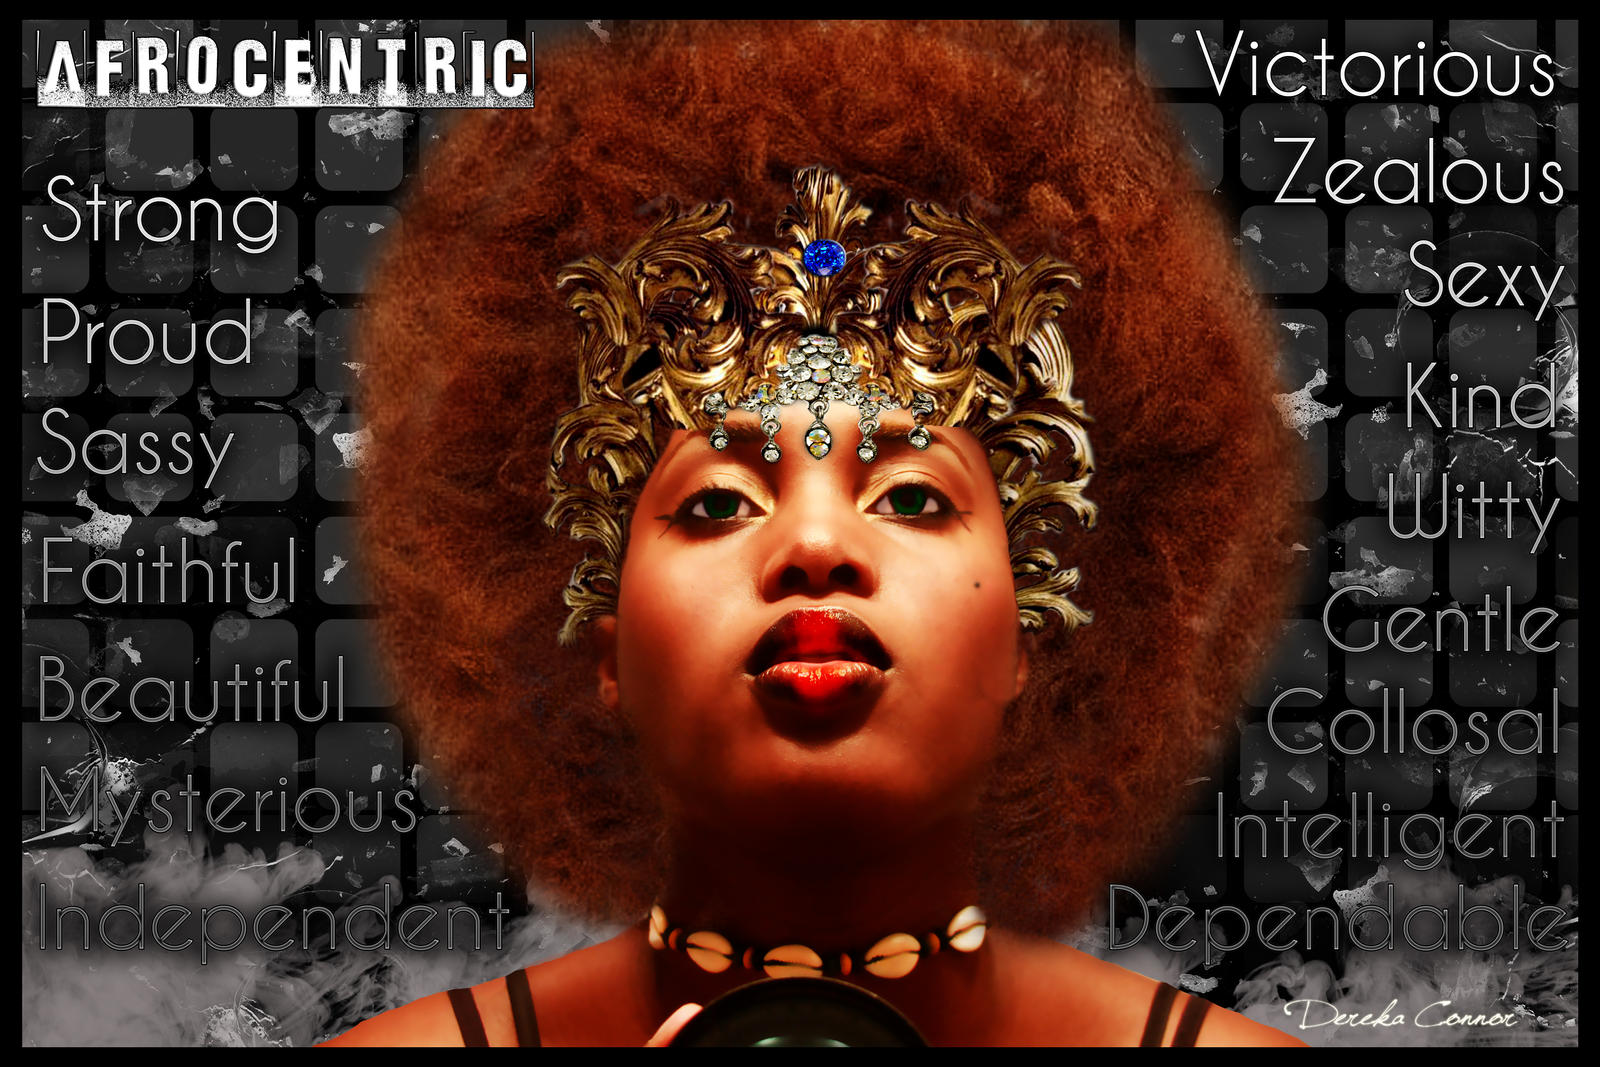 Afrocentric by Akered-Ronnoc on DeviantArt: akered-ronnoc.deviantart.com/art/Afrocentric-209461303